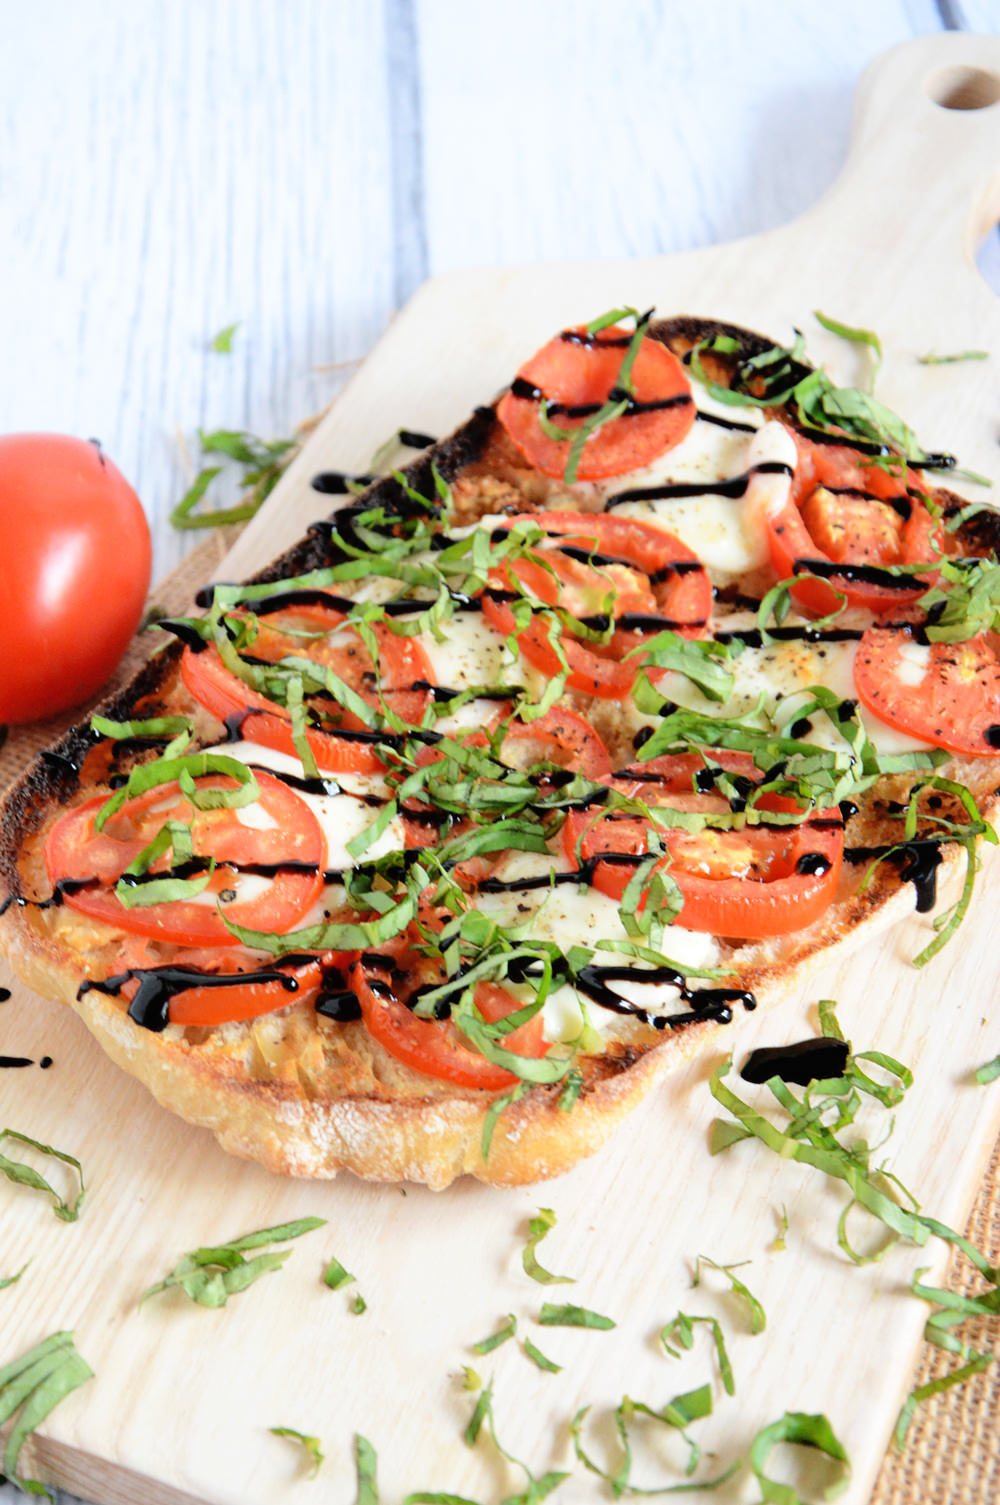 A Caprese Ciabatta Flatbread spiced up with a roasted garlic spread, roma tomatoes, fresh mozzarella and a balsamic drizzle! A simple and quick dinner!